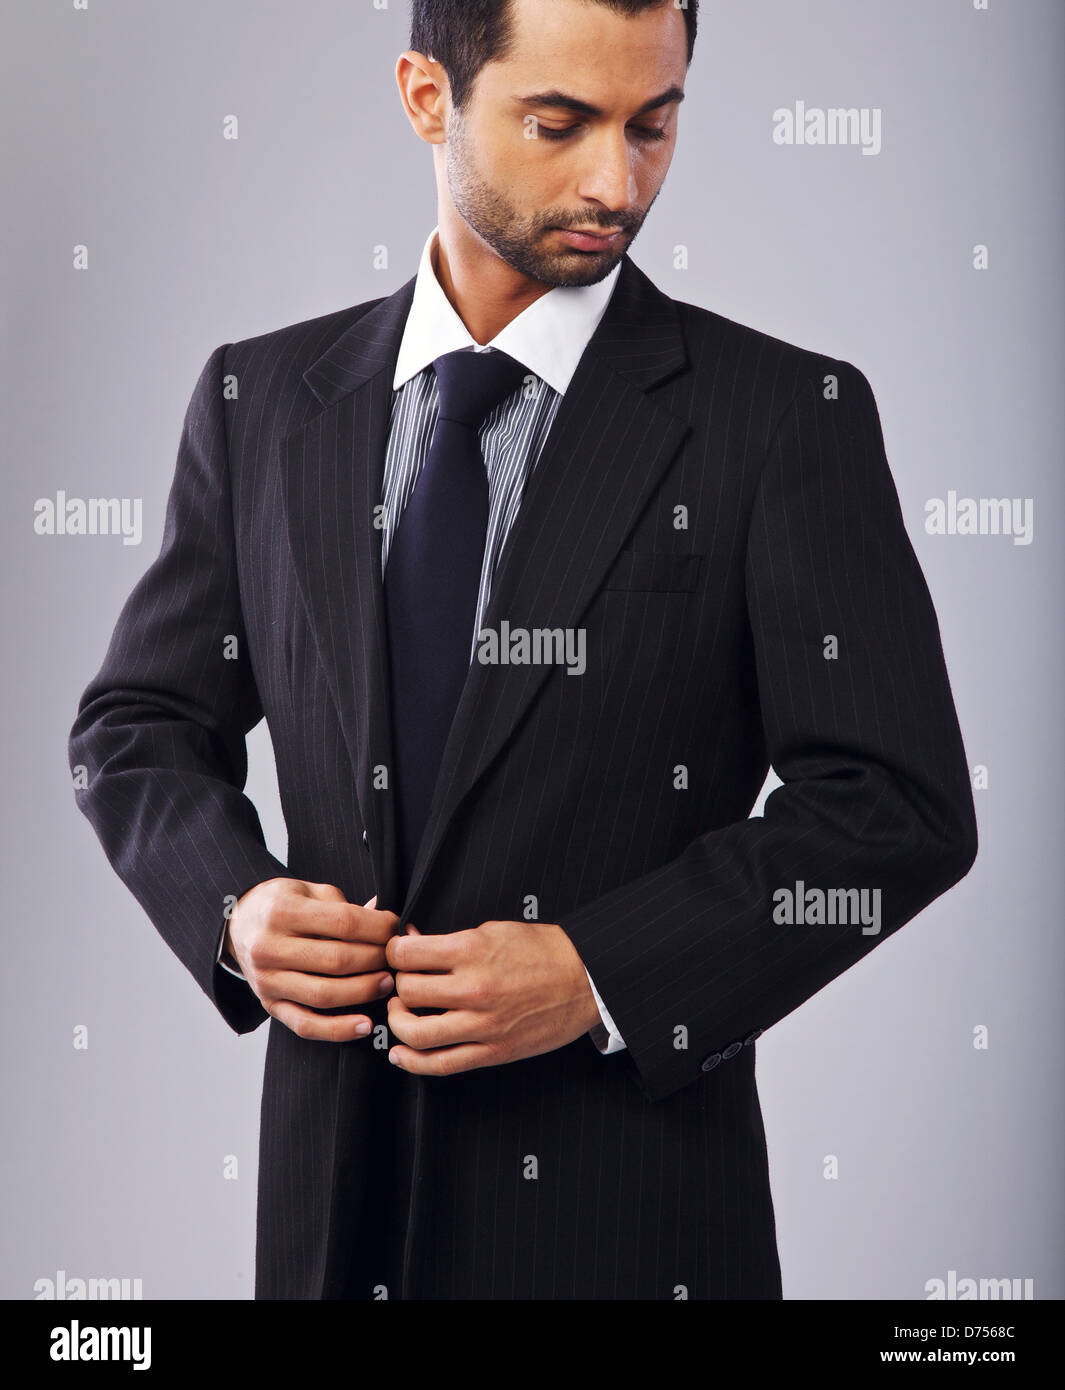 Portrait of a stylish businessman buttoning his suit - Stock Image